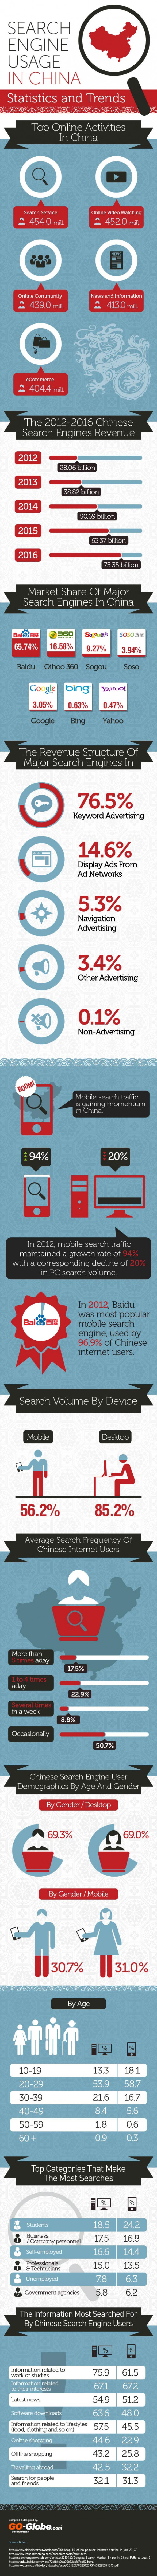 Search engine usage in China